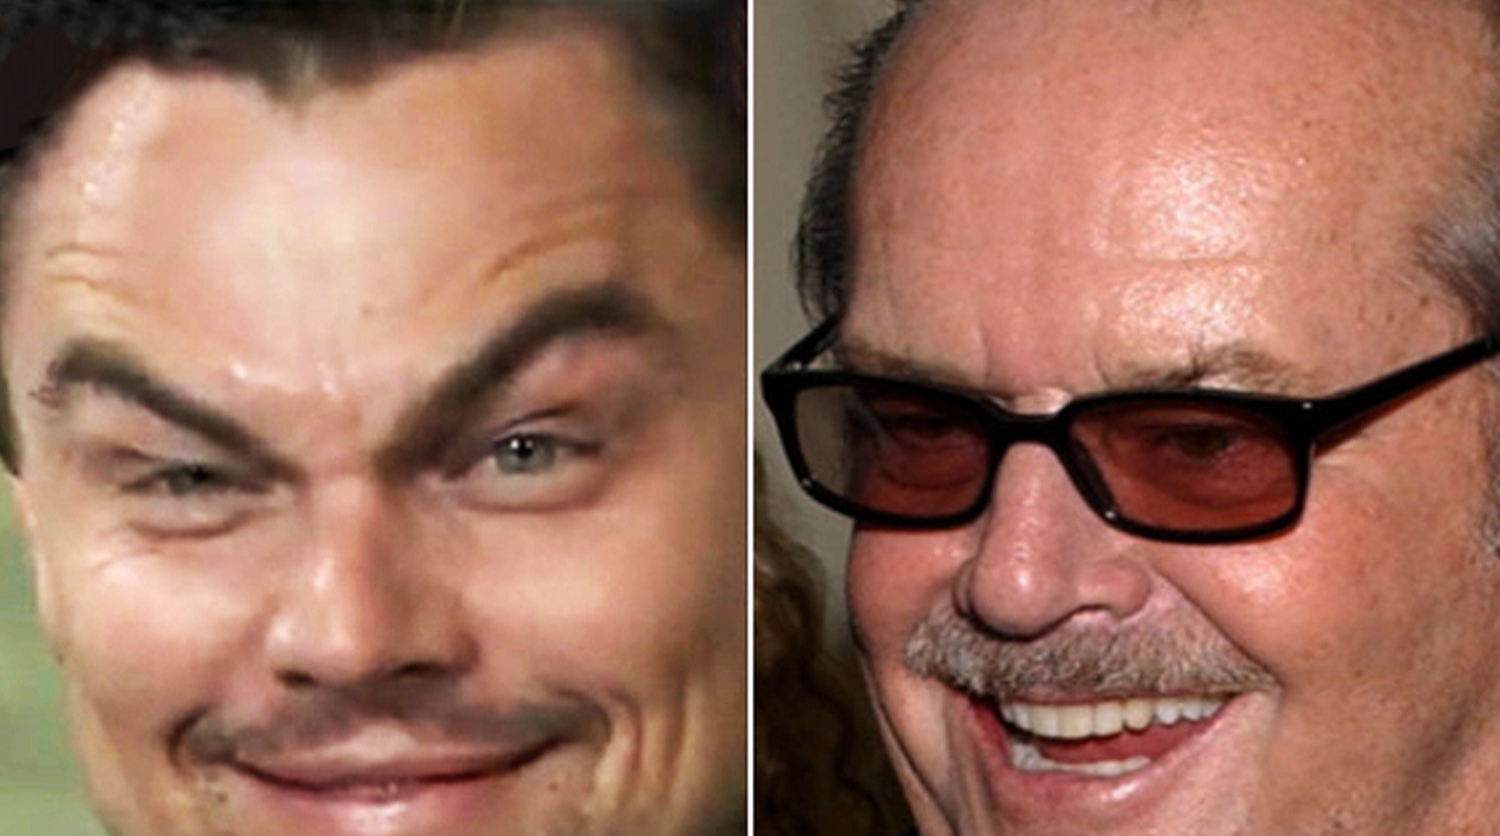 Leo or Willie: Who does Jack Nicholson better? - TODAY.com